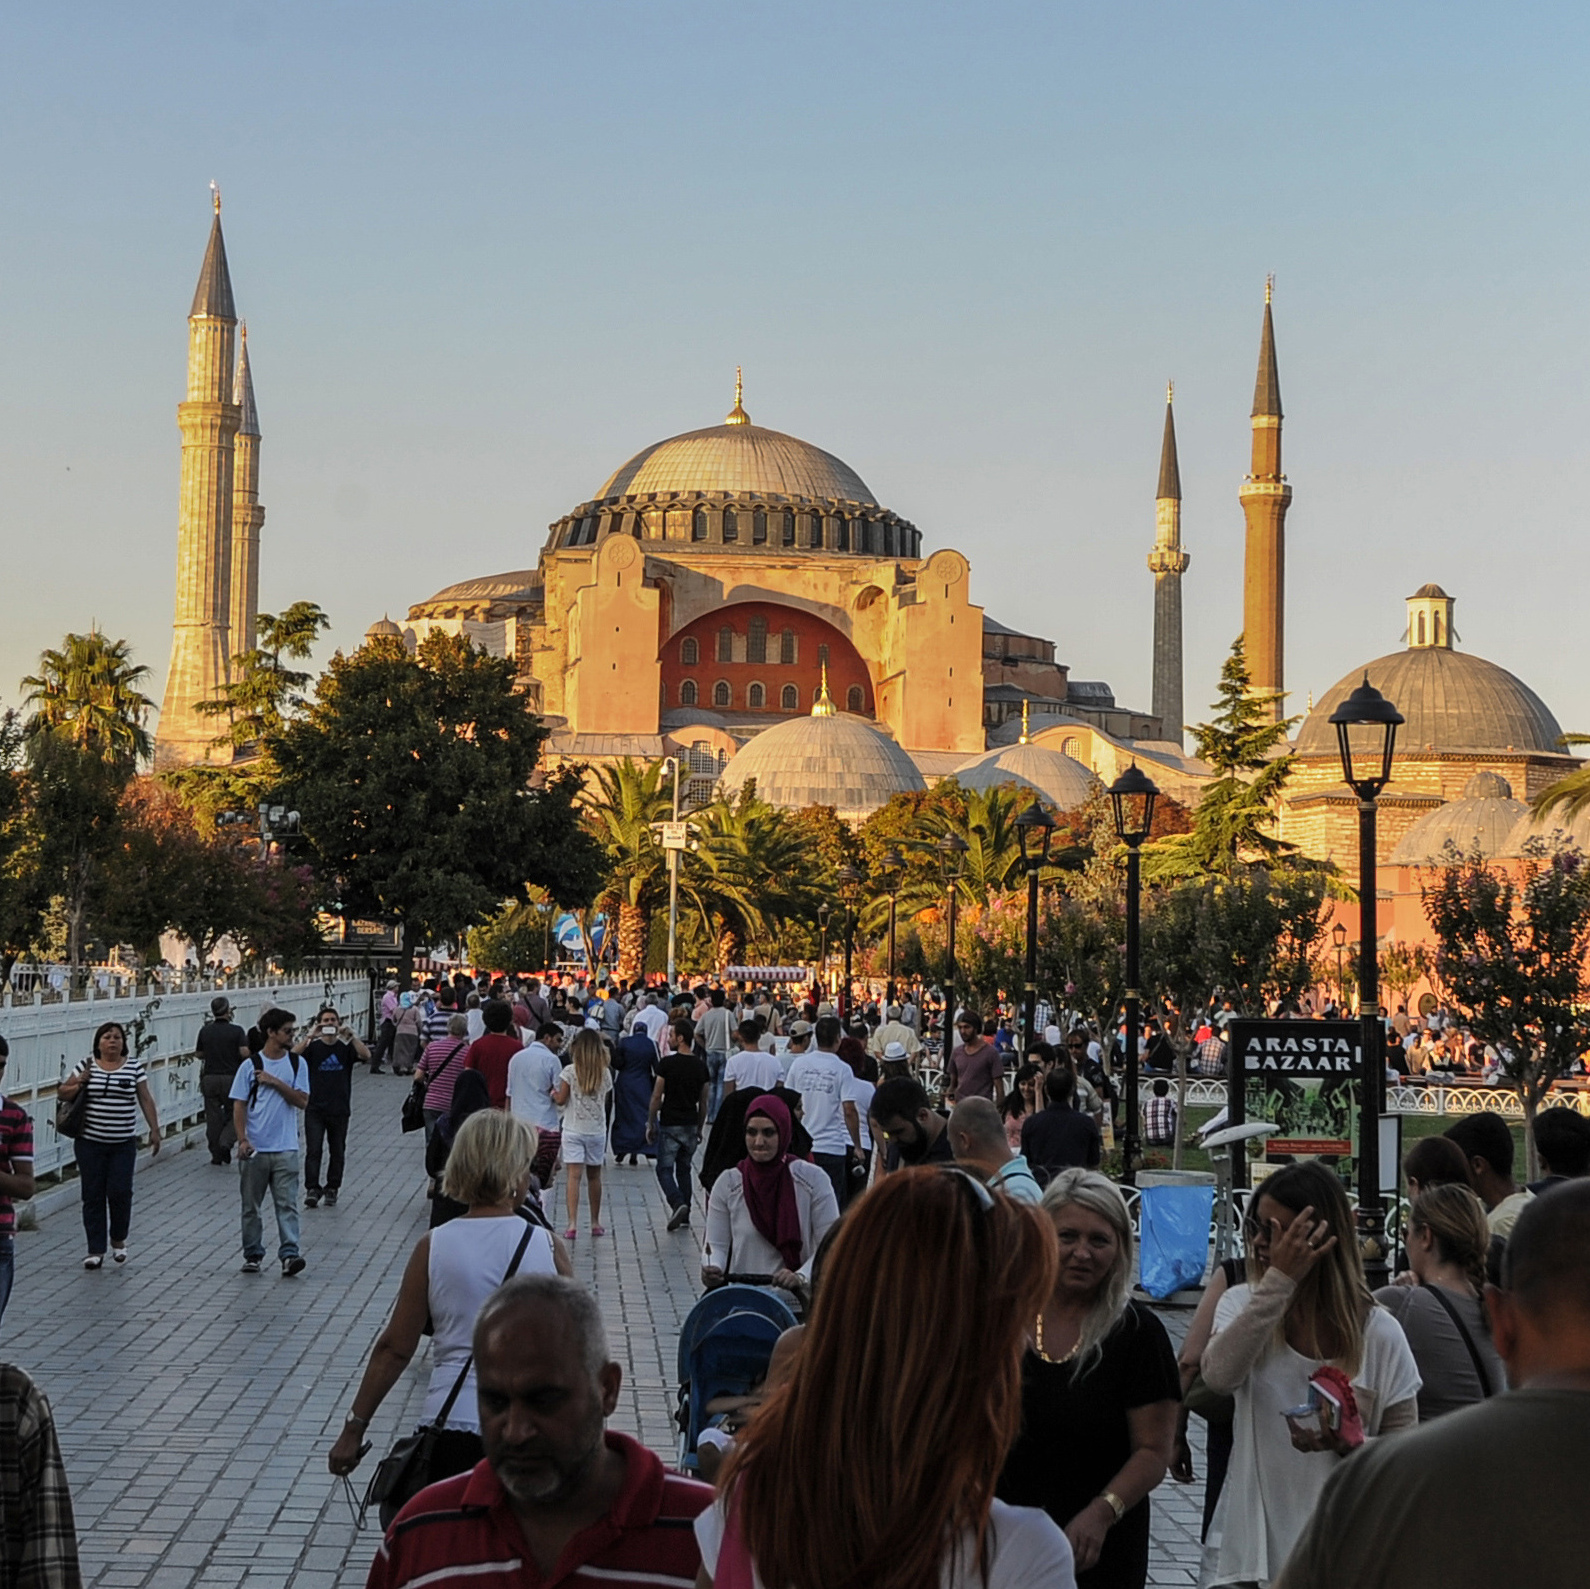 Turkish officials had hoped to bring the 2020 Olympics to Istanbul. Here, the city's Hagia Sophia Museum is seen in the background, with Sultan Ahmed Square in the foreground.